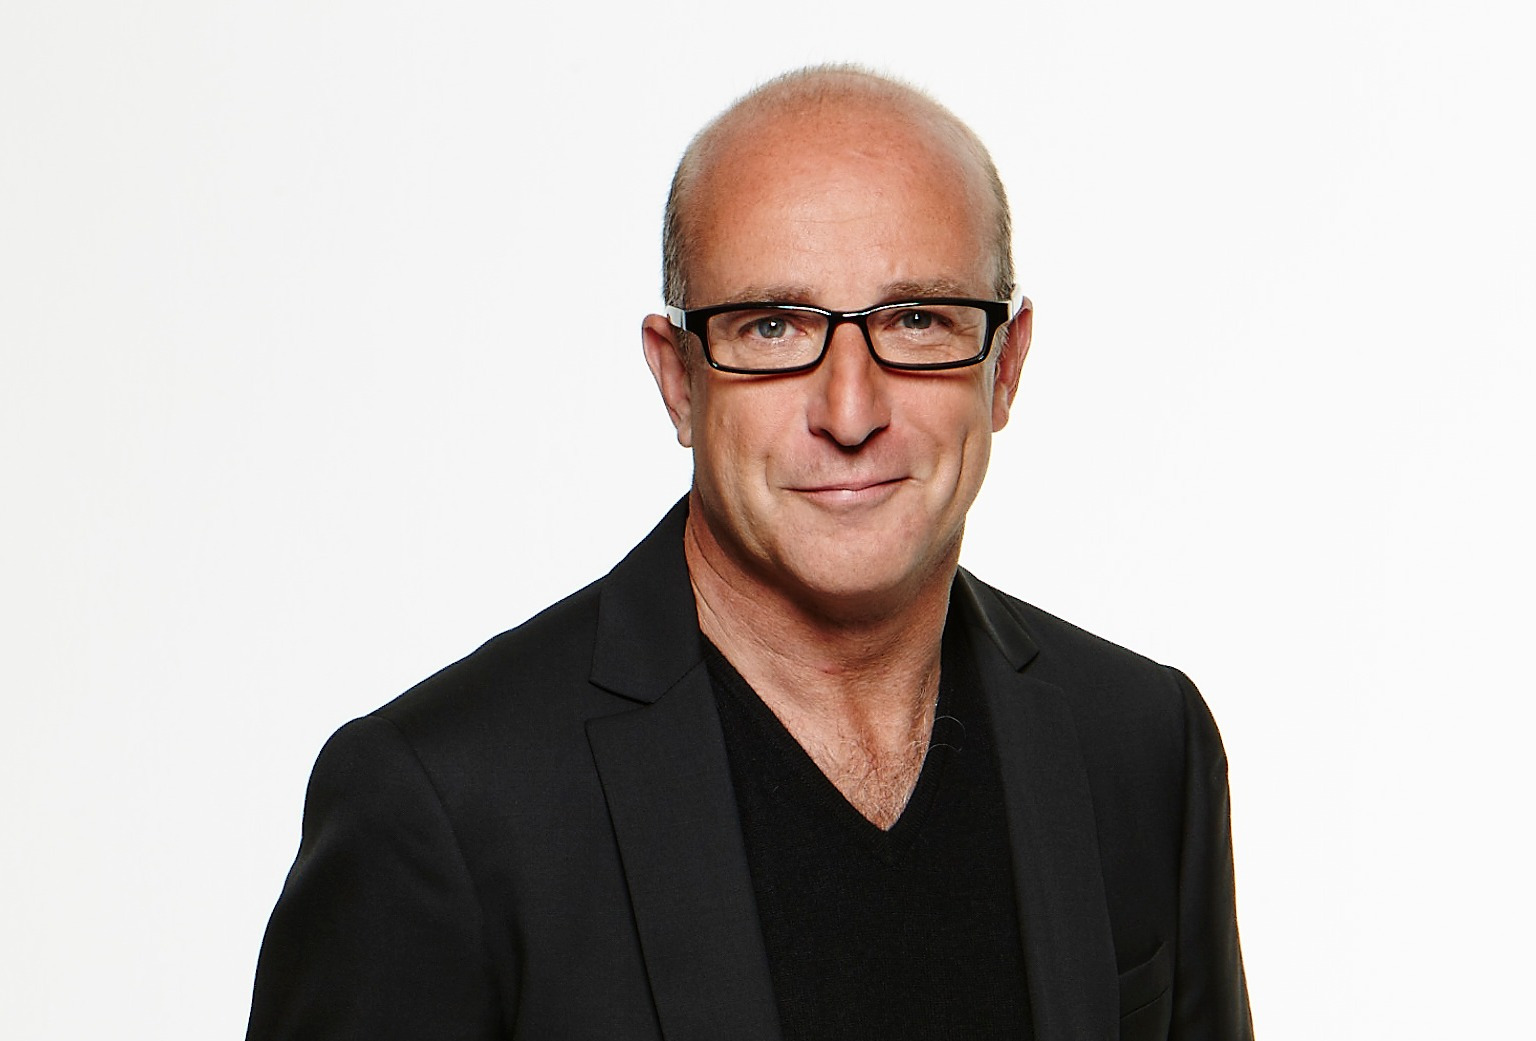 Paul McKenna shares his techniques for conquering coronaphobia